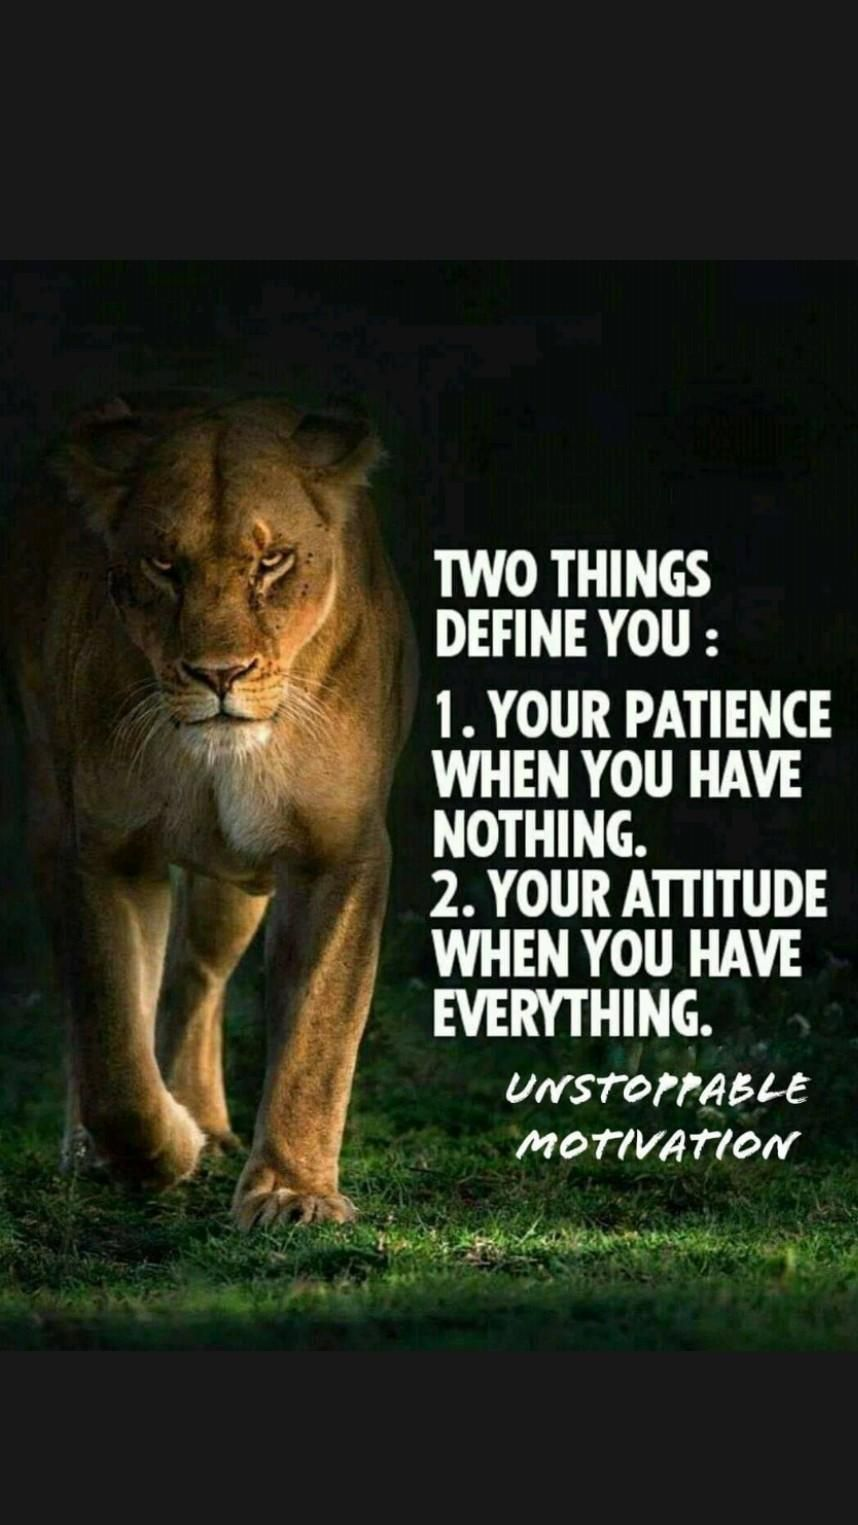 Have an attitude of gratitude n the universe will continue to manifest good things into your life